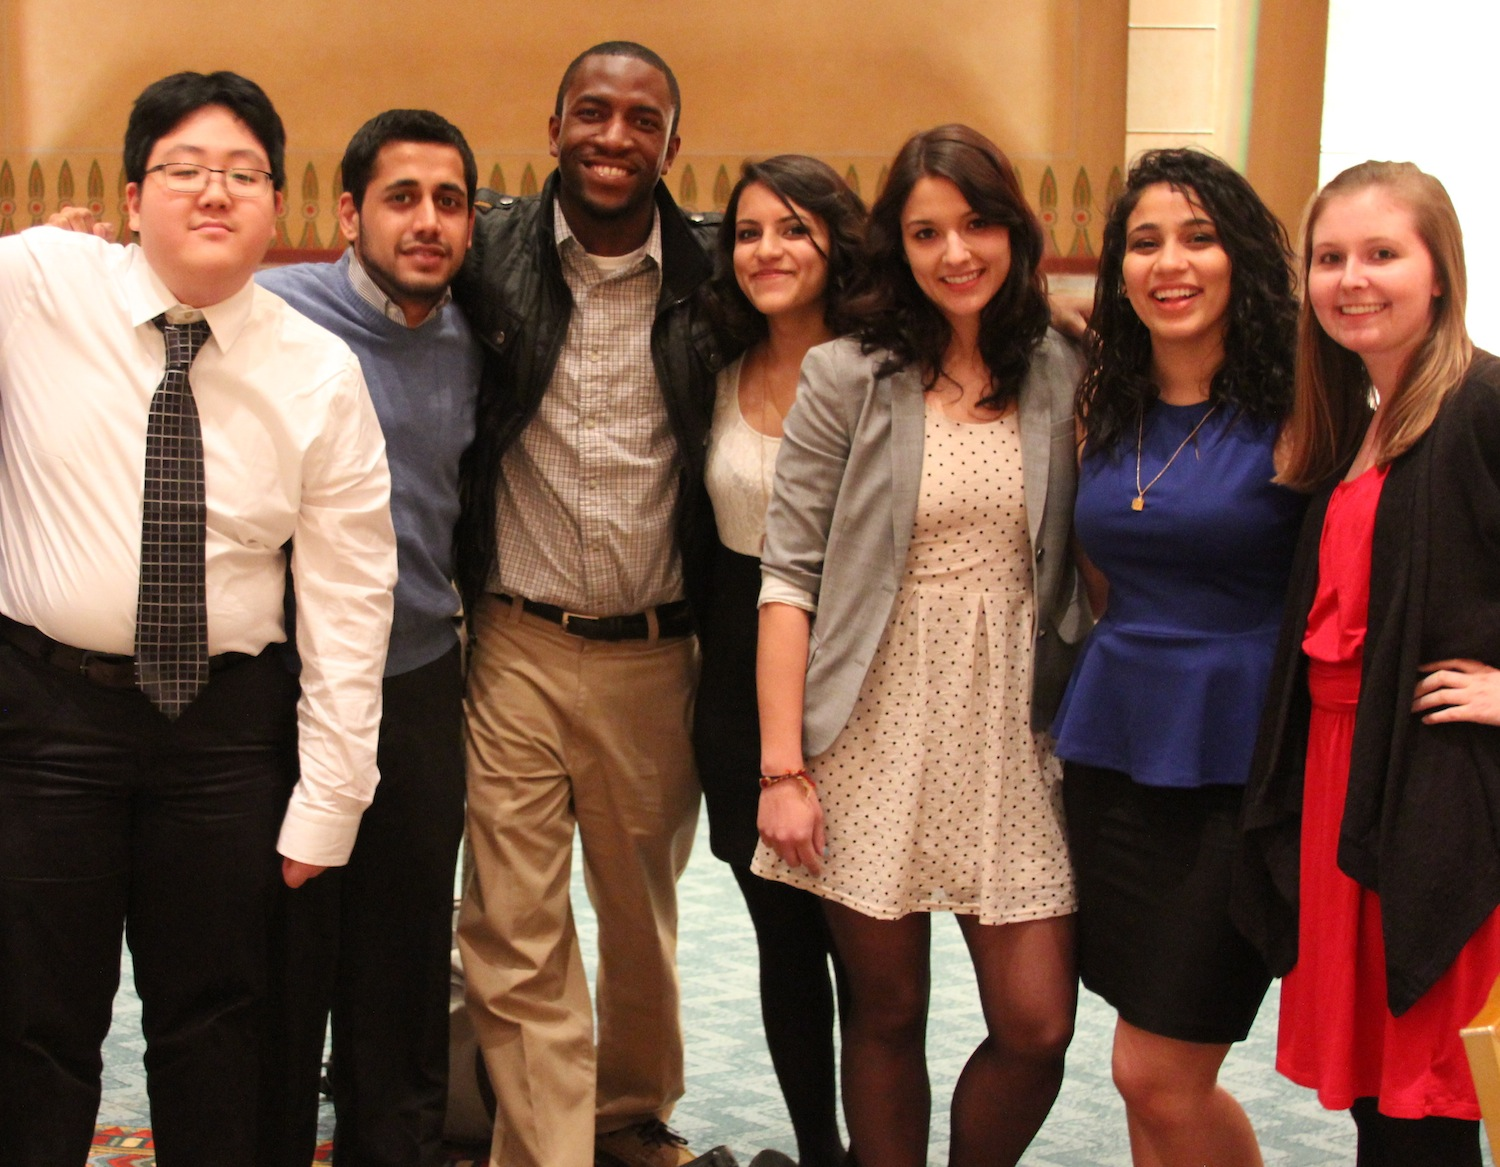 Amy Beth participating in a Muslim Student Association event with her Emory peers